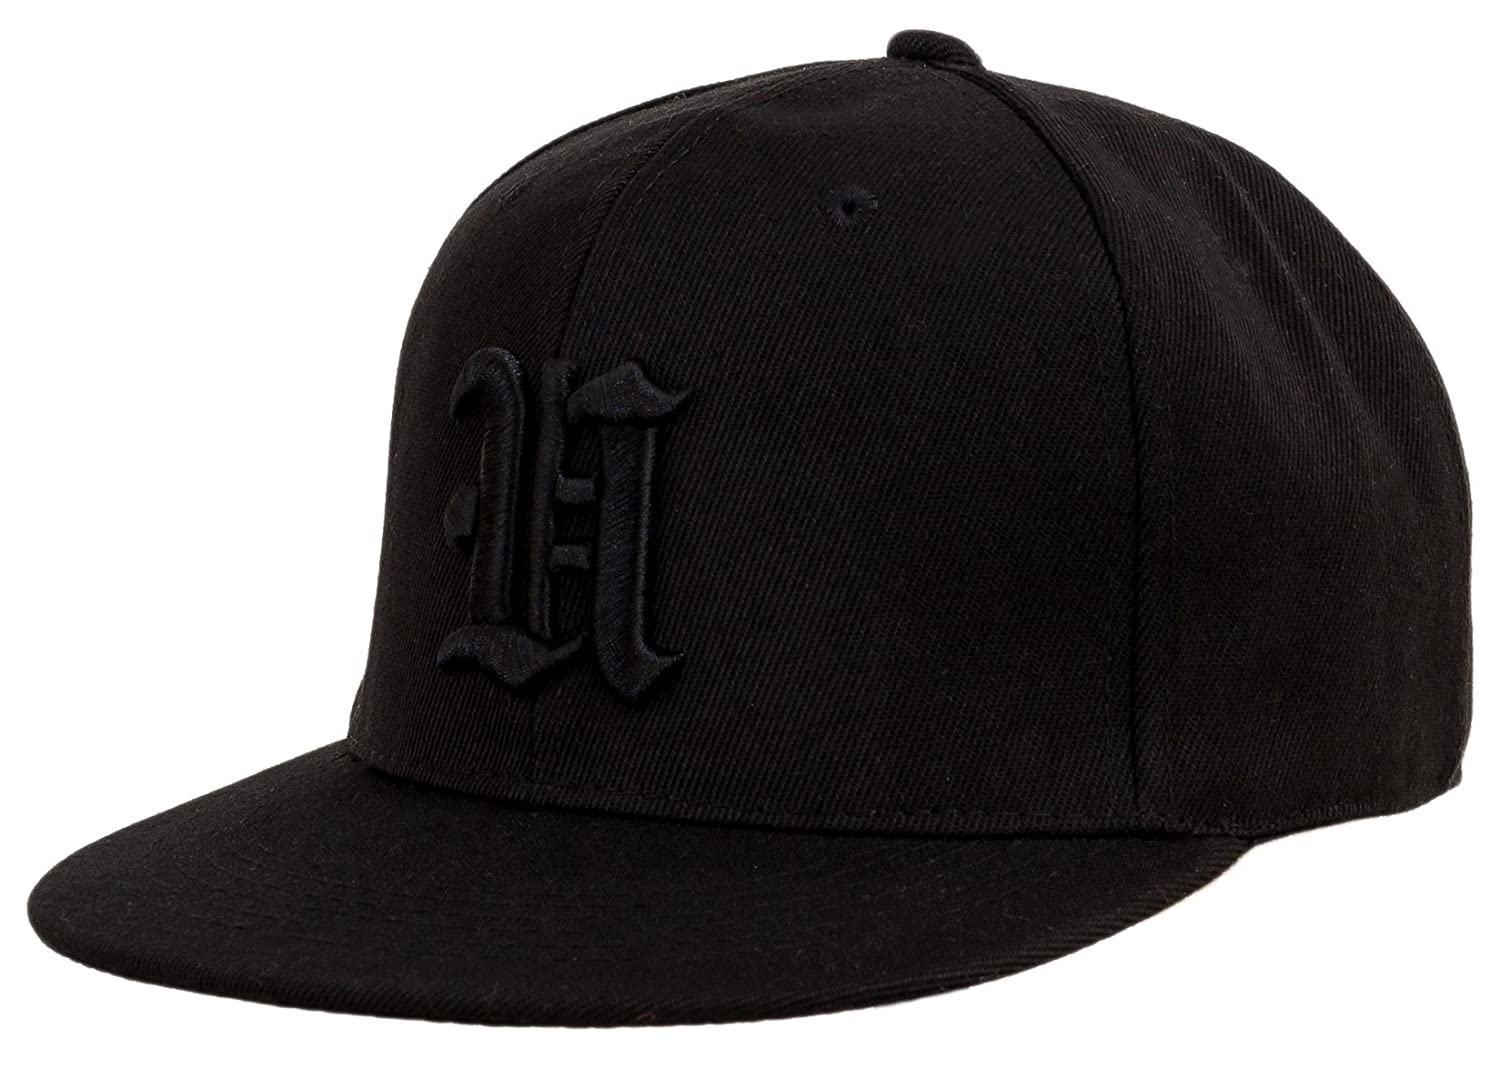 4sold Kids Snapback Hat With Raised 3D Black Embroidery Letter Baseball Cap Hip-Hop Cap Hat Headwear